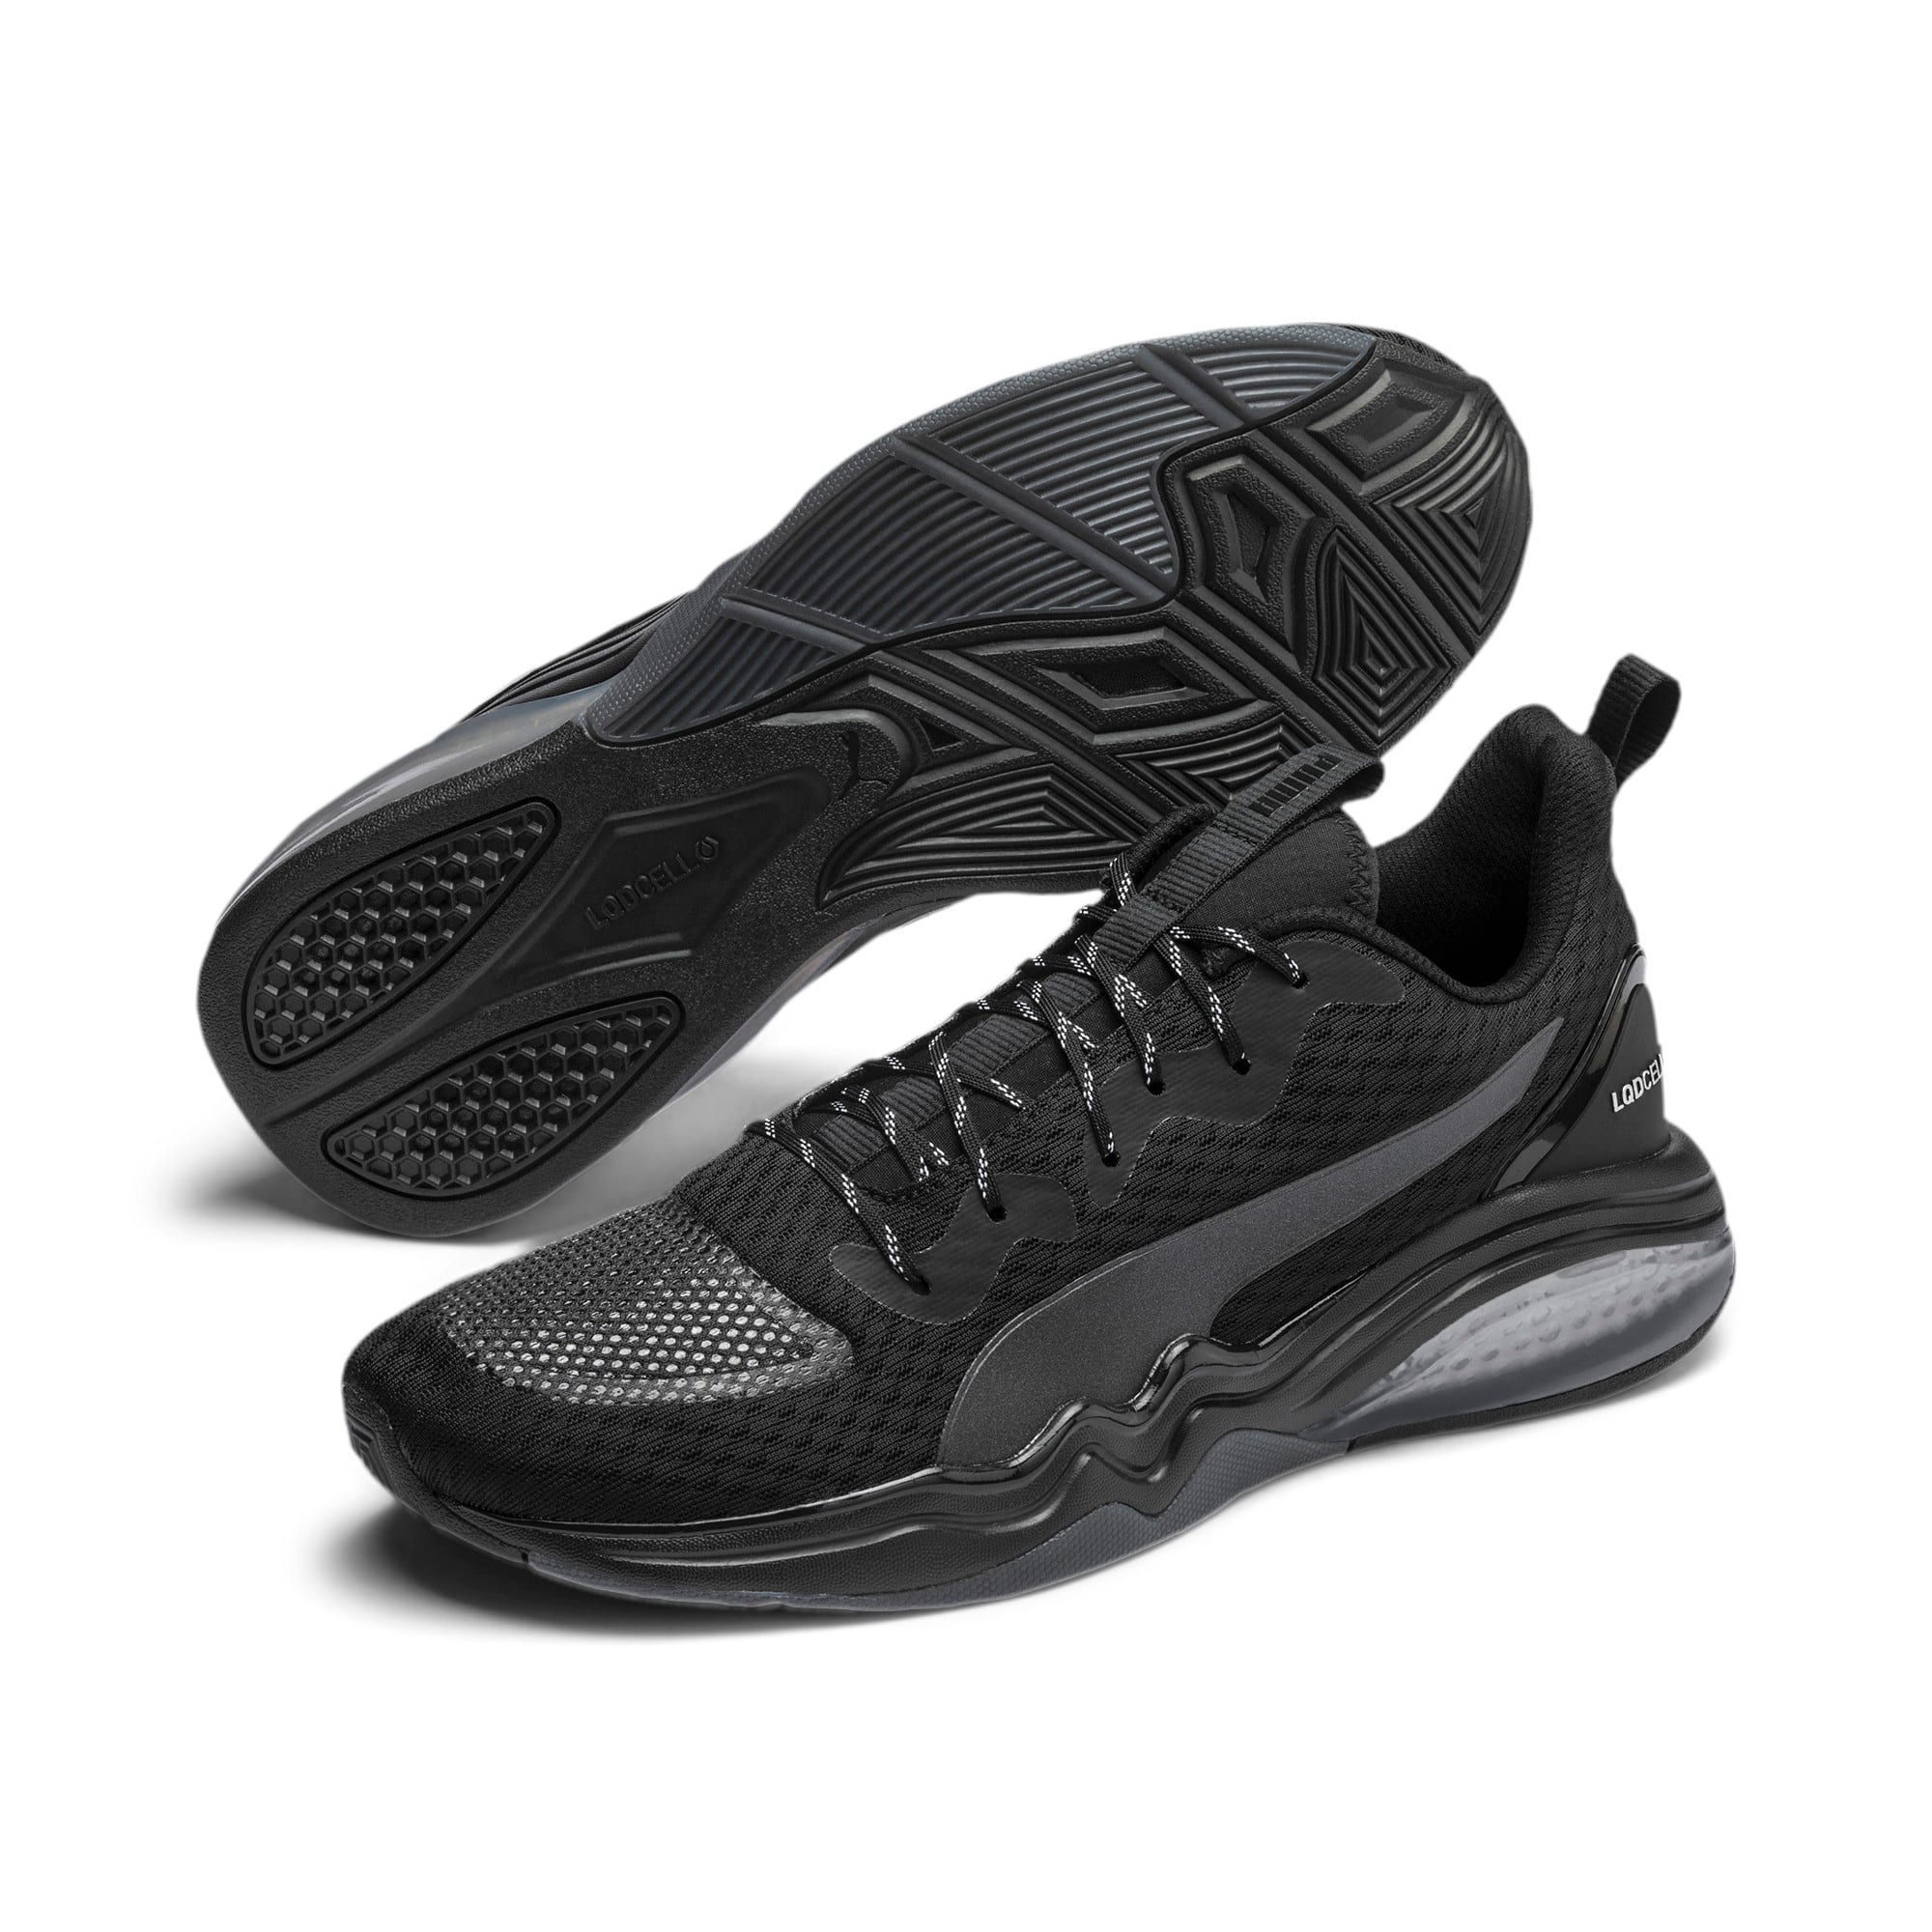 Thumbnail 3 of LQDCELL Tension Men's Training Shoes, Puma Black-Nrgy Red, medium